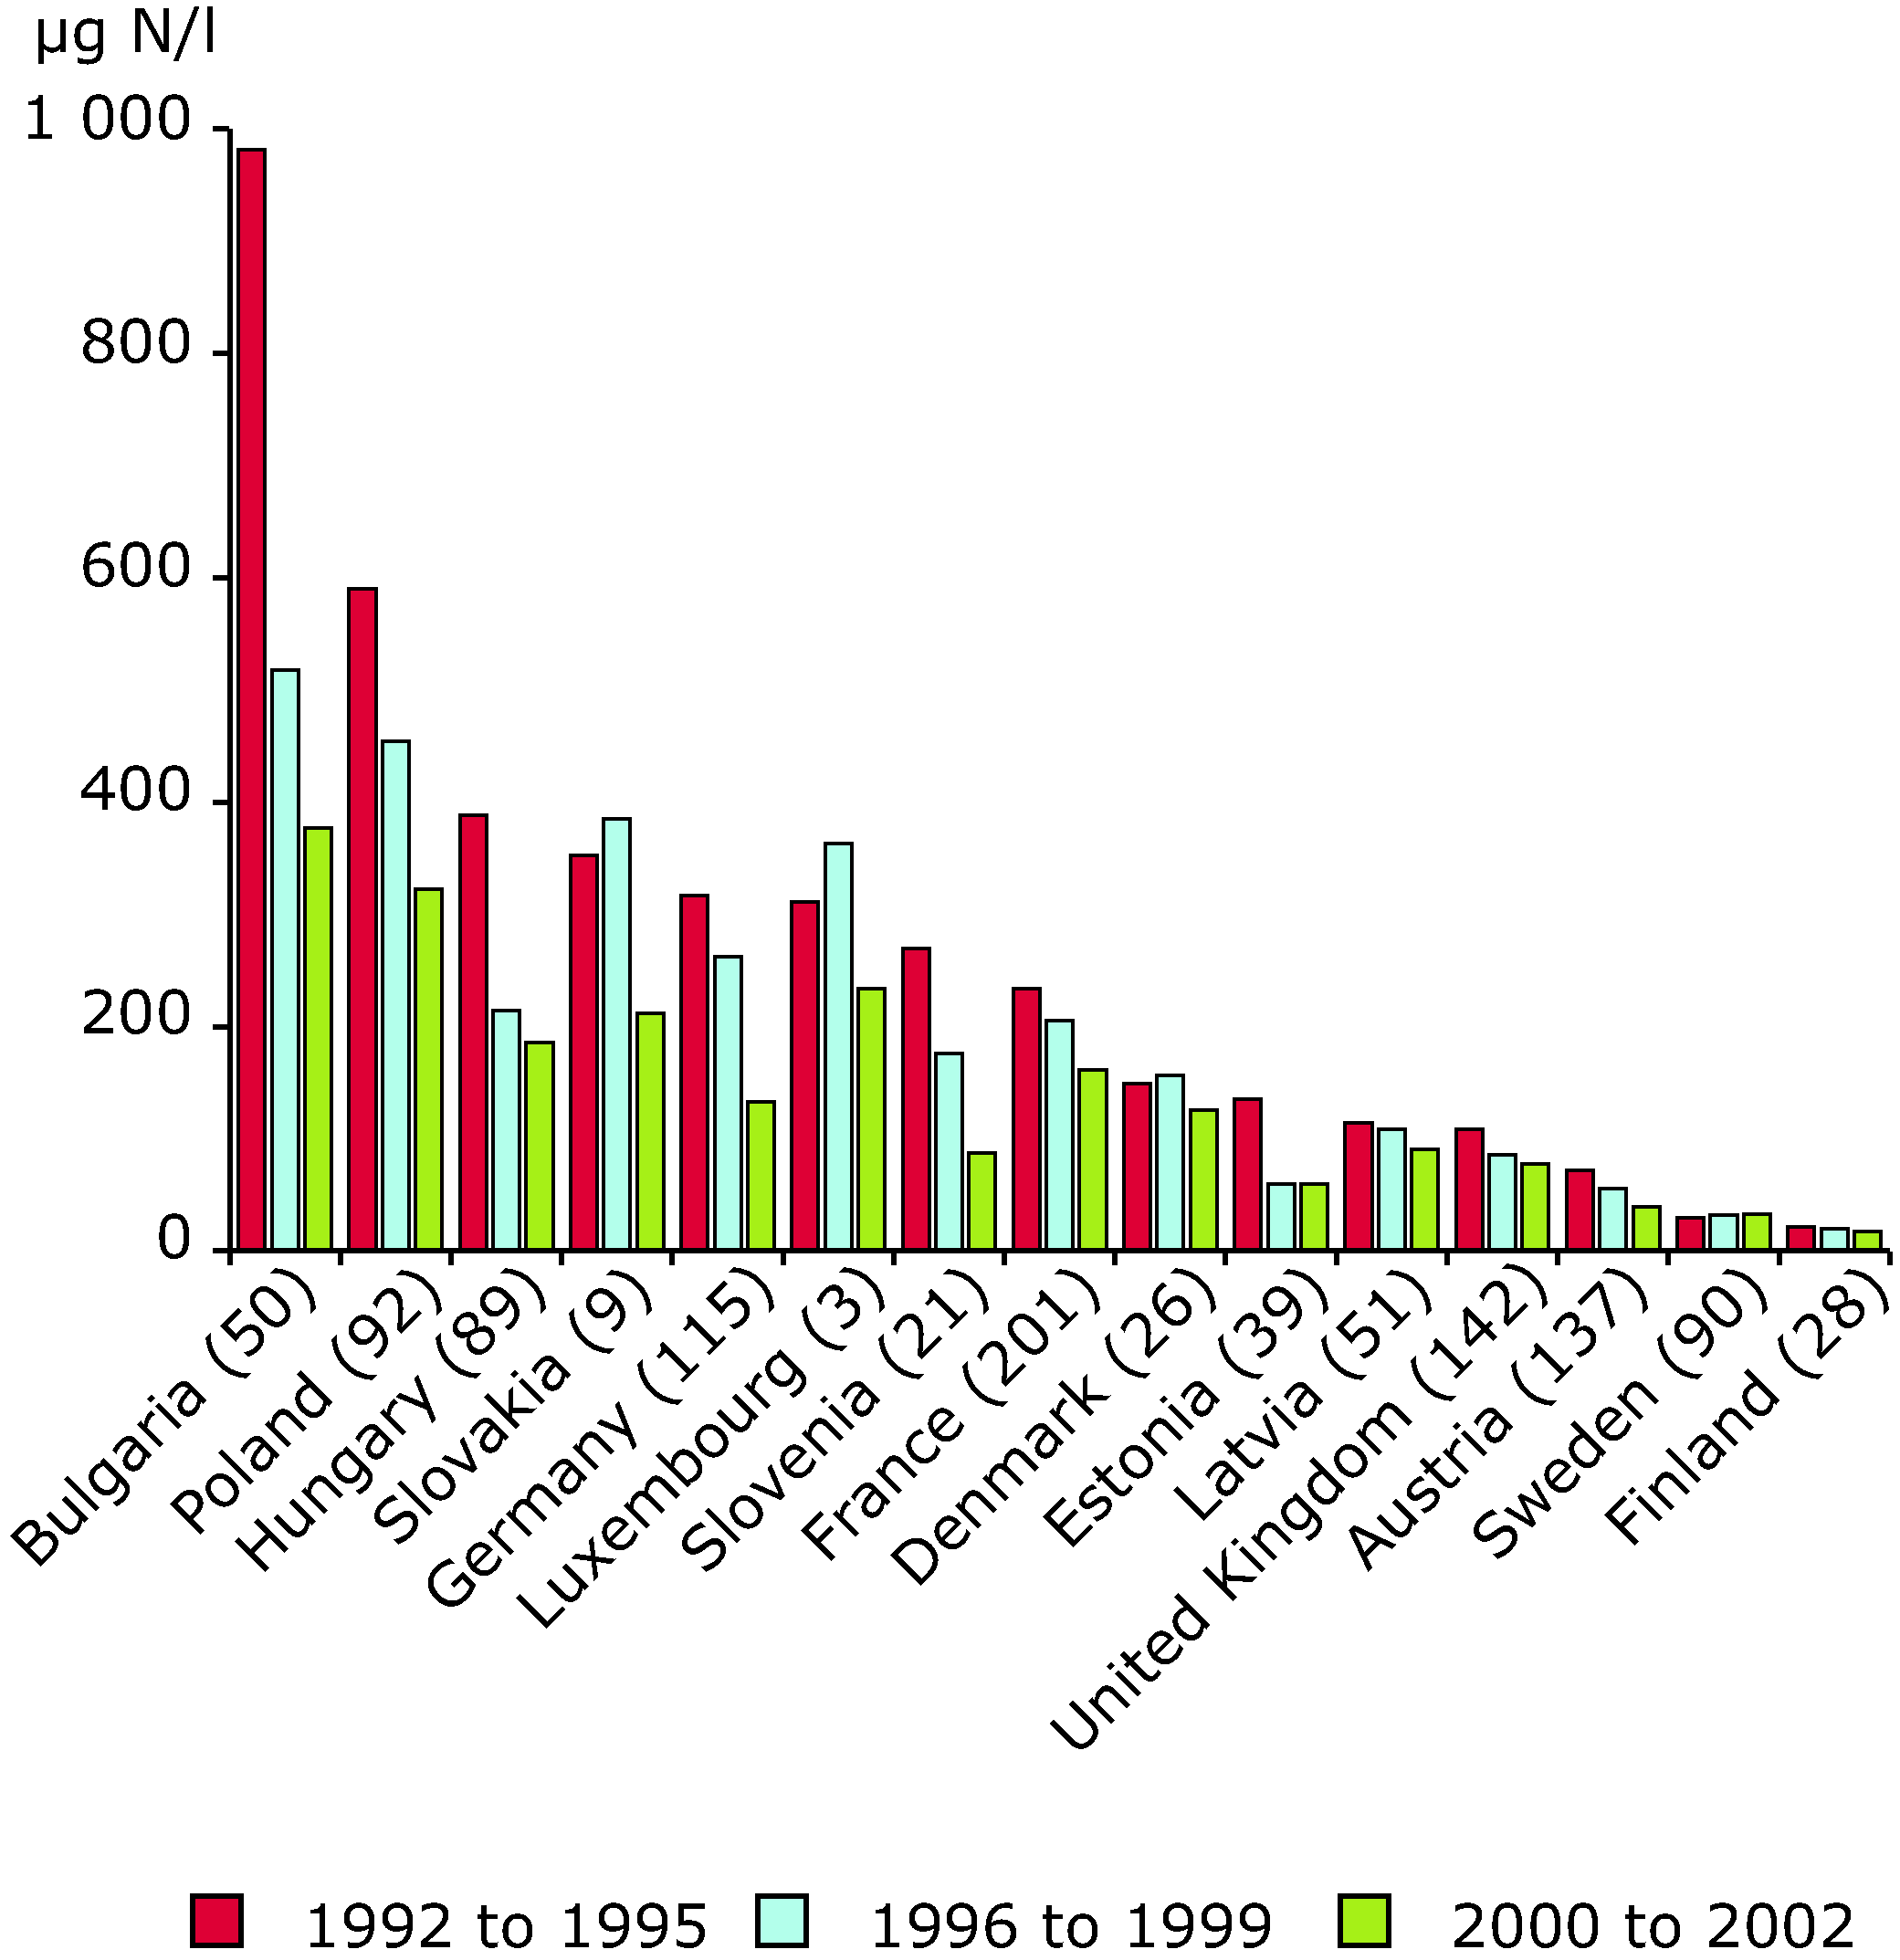 Trends in the concentration of total ammonium in rivers and between 1992 and 2002 in different countries